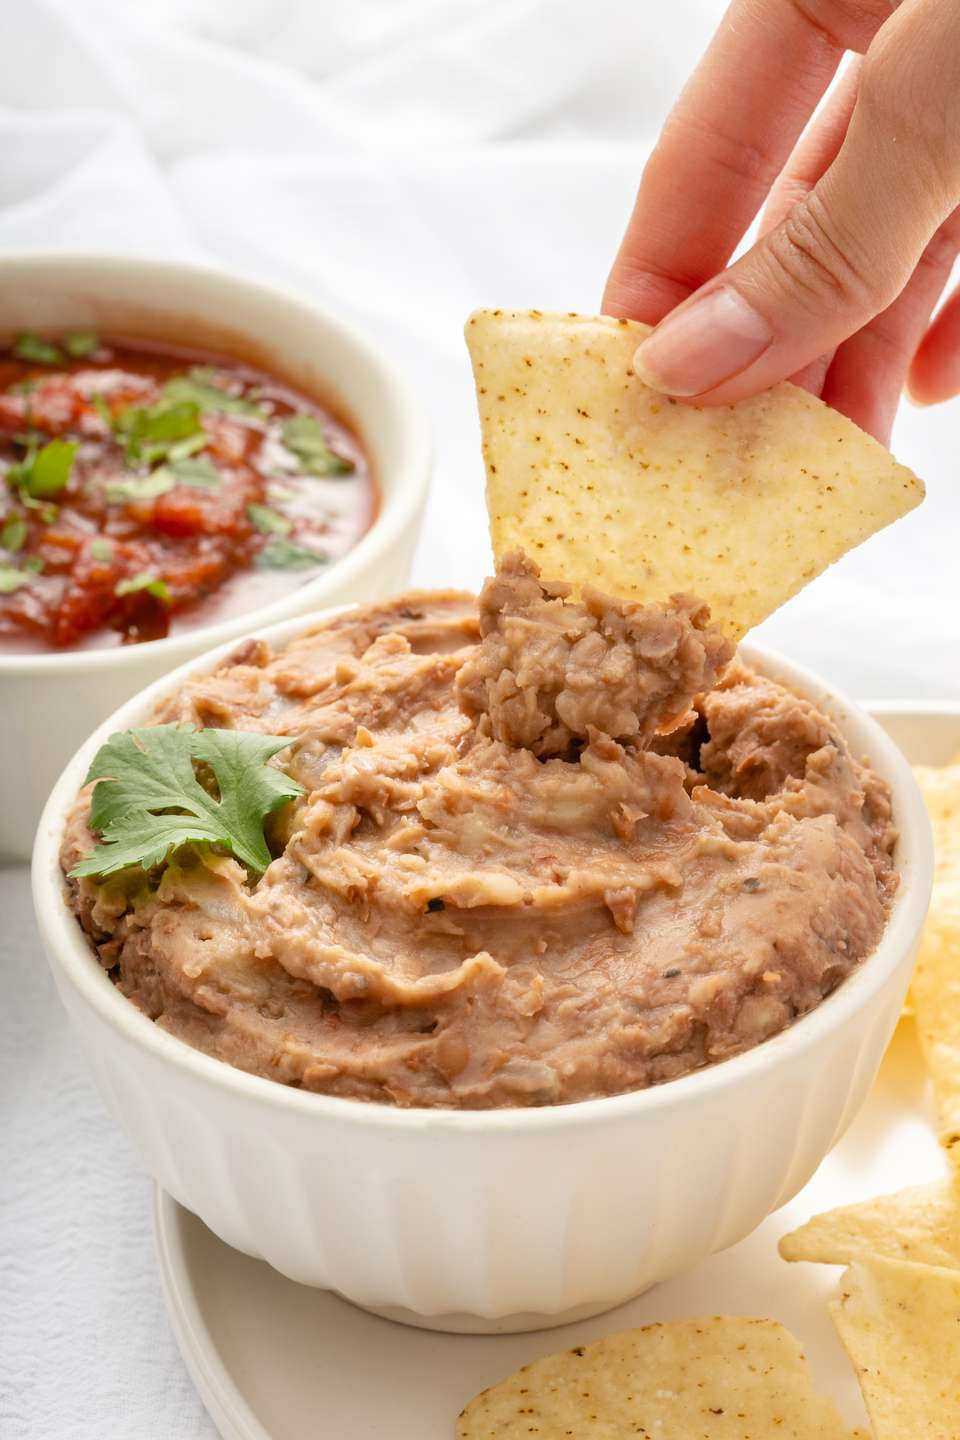 Dipping tortilla chip into a bowl of homemade refried beans.